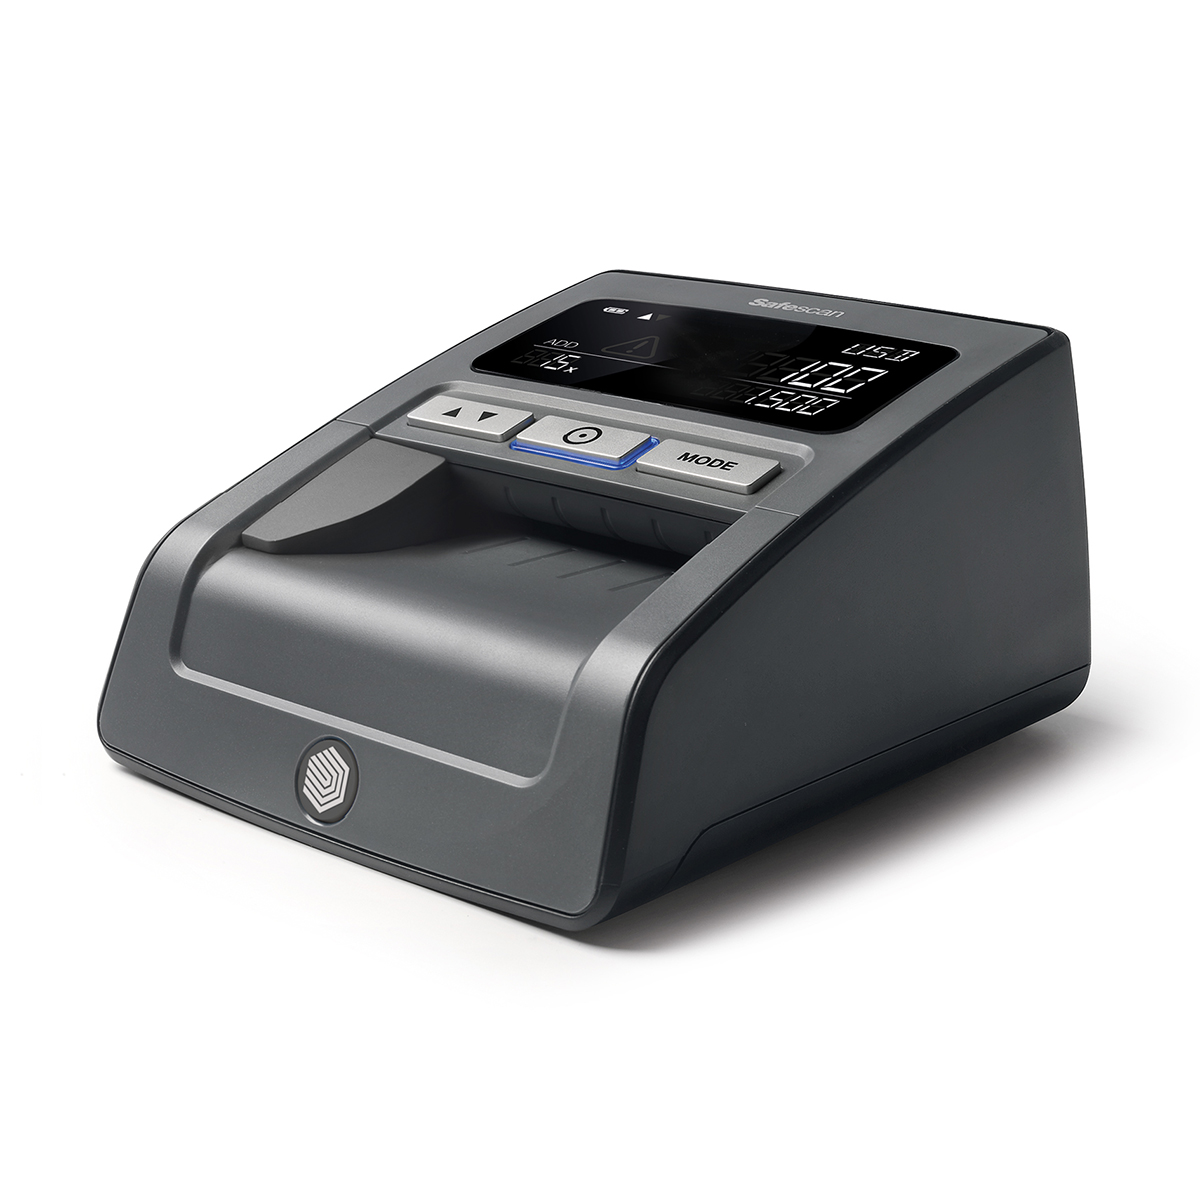 Safescan 185-S Automatic Counterfeit Detector with 7 Point Detection